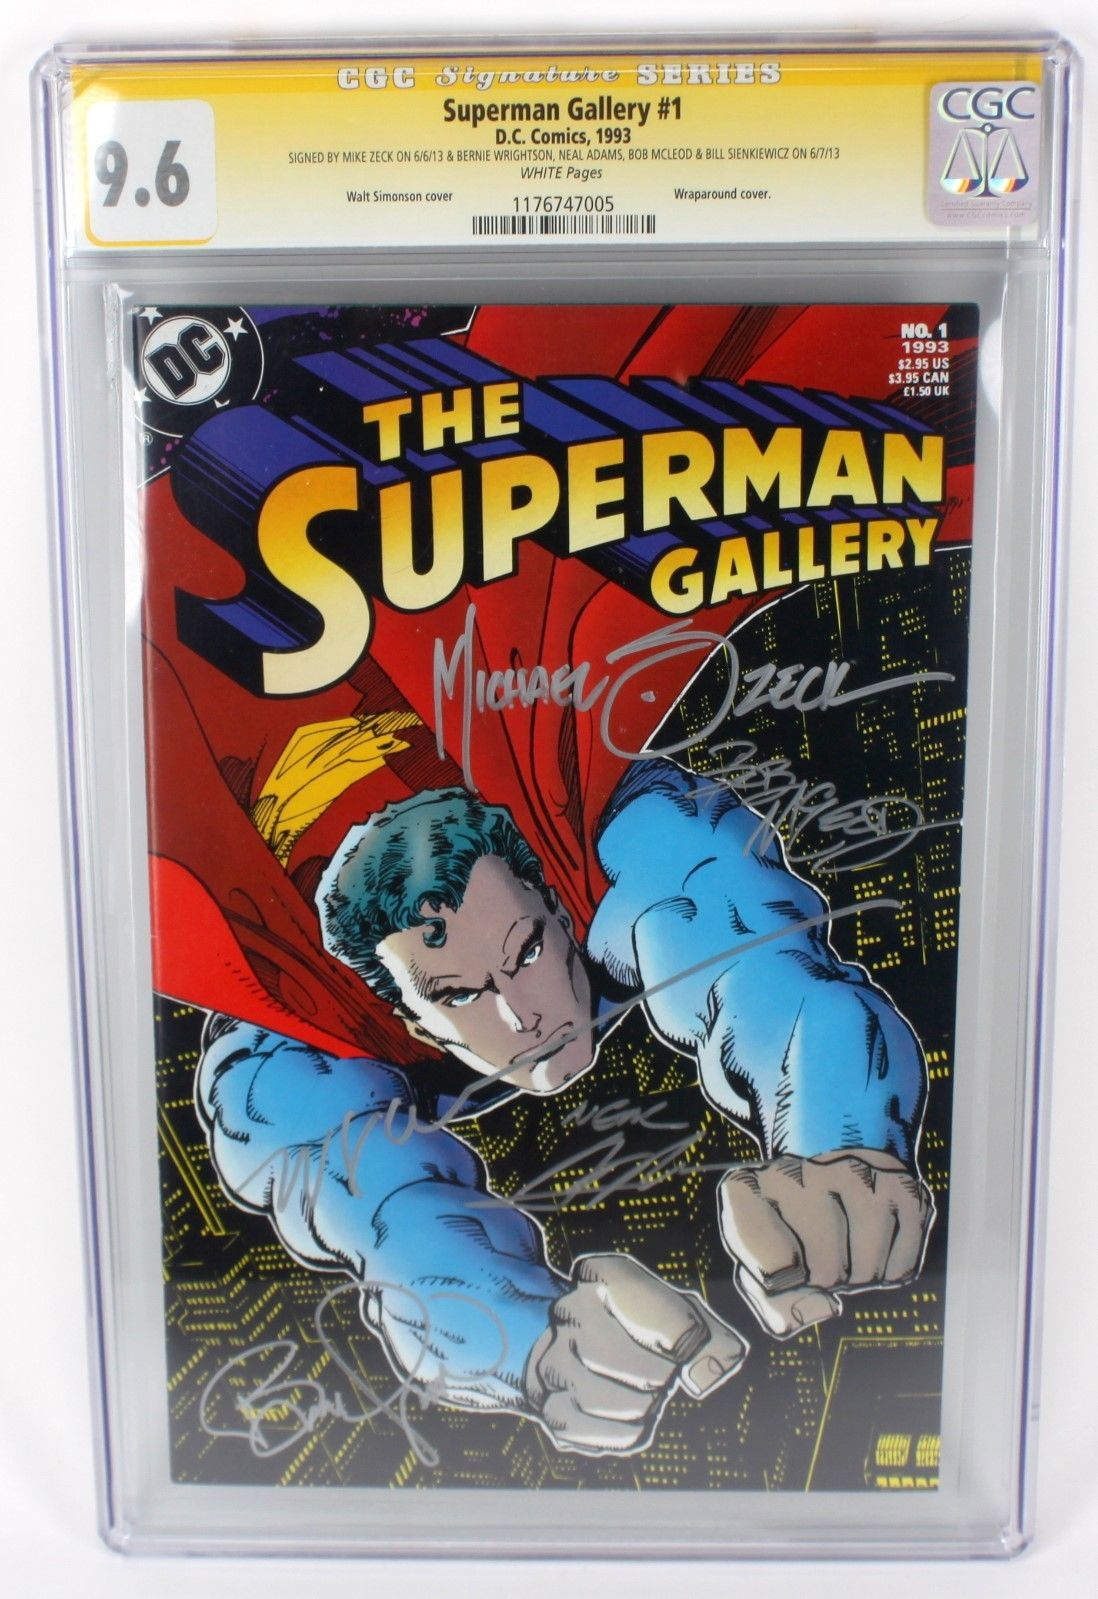 SUPERMAN GALLERY #1 COMIC CGC SIGNATURE SERIES 9.6 SIGNED ADAMS ZECK AND MORE